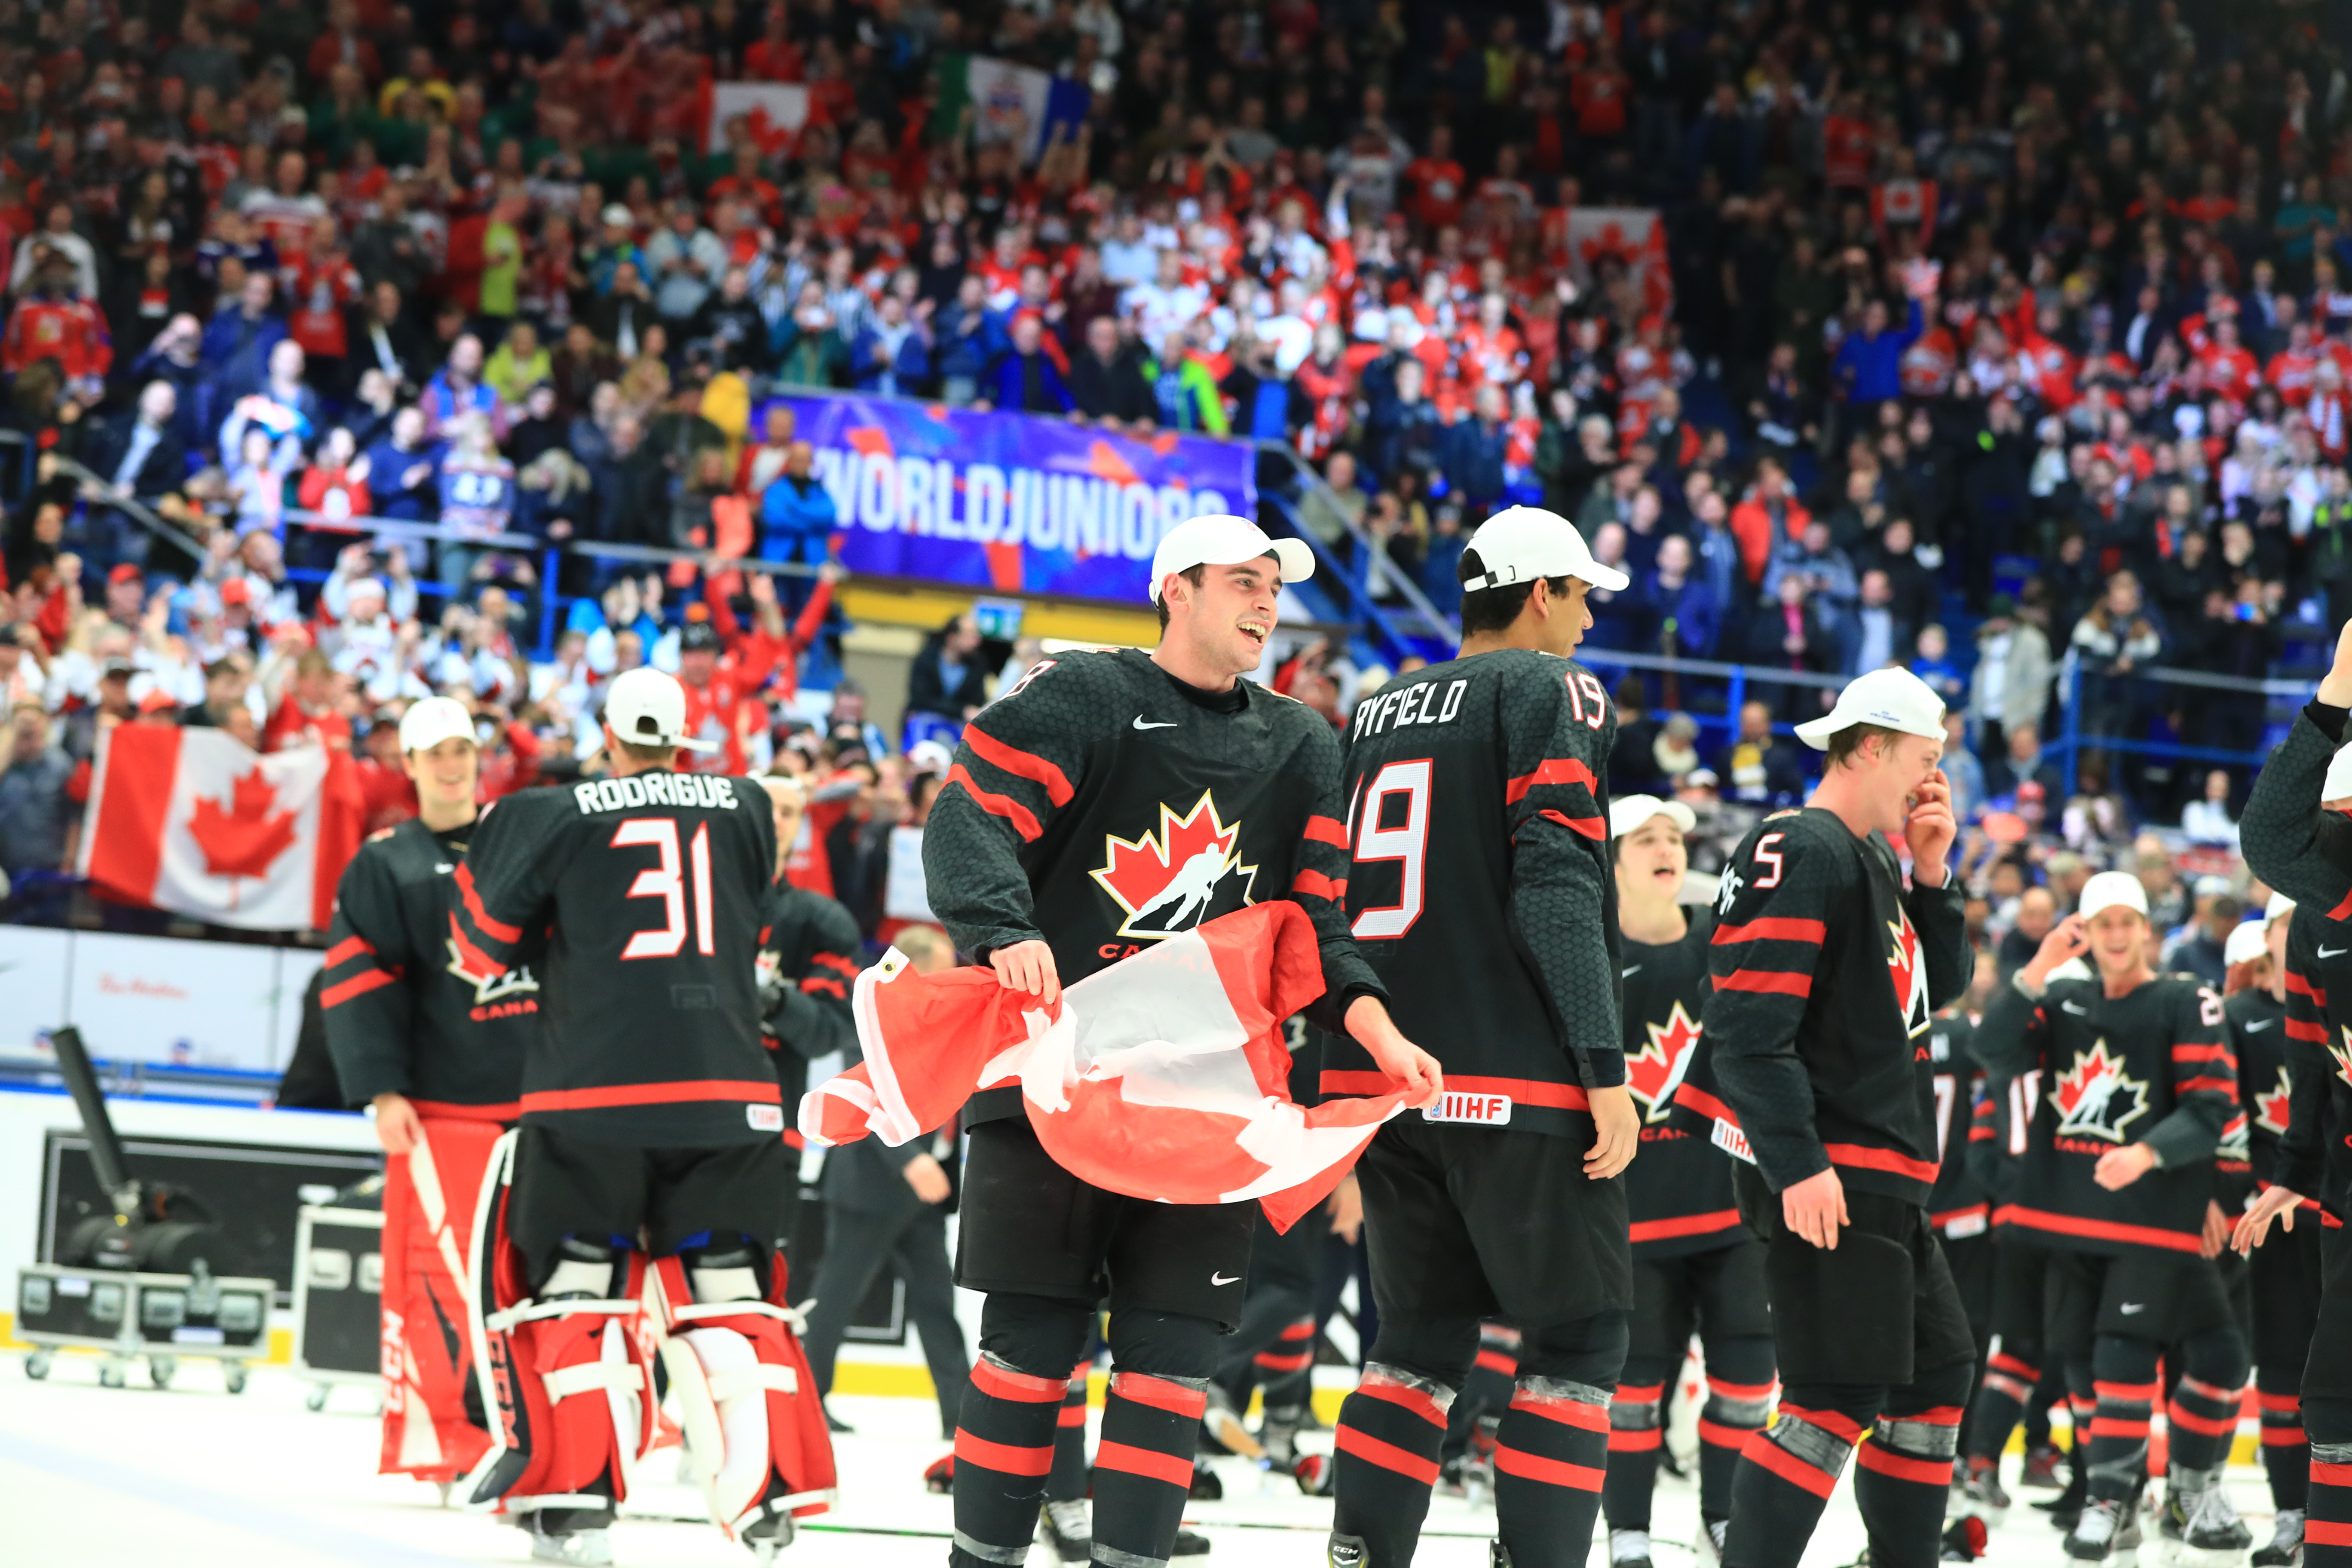 Canadian players Liam Foudy, Quinton Byfield, and Jacob Bernard-Docker (L-R front) celebrate with the trophy after the medal ceremony for the 2020 World Junior Ice Hockey Championship final match between Canada and Russia at Ostravar Arena; Canada won 4-3.